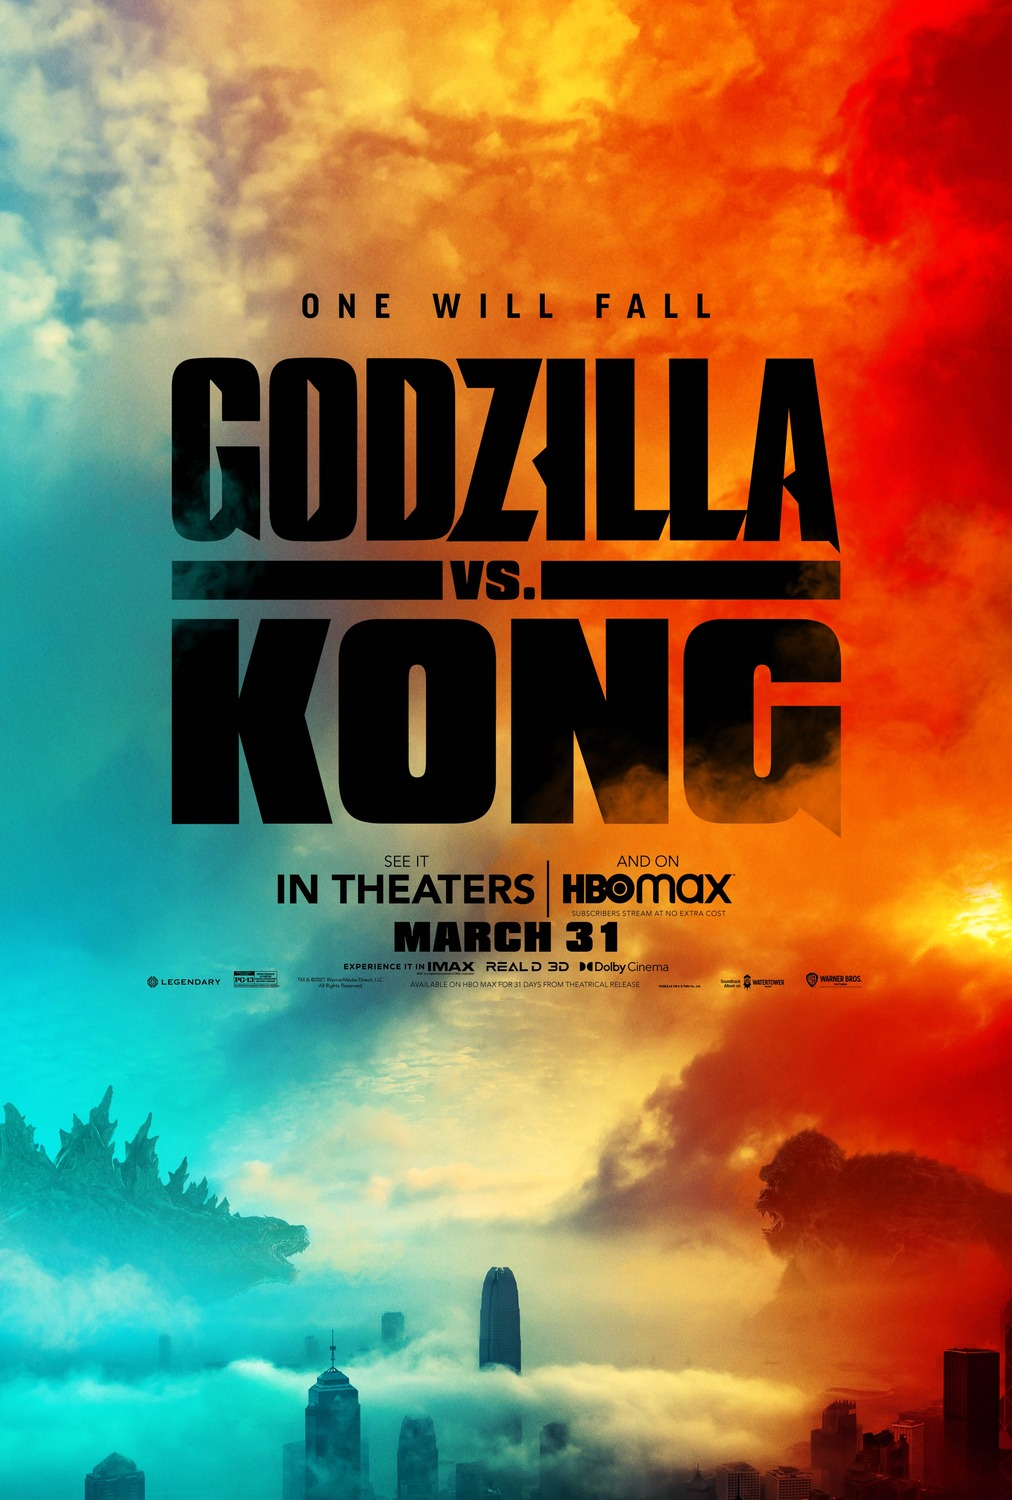 Godzilla vs. Kong tops box office